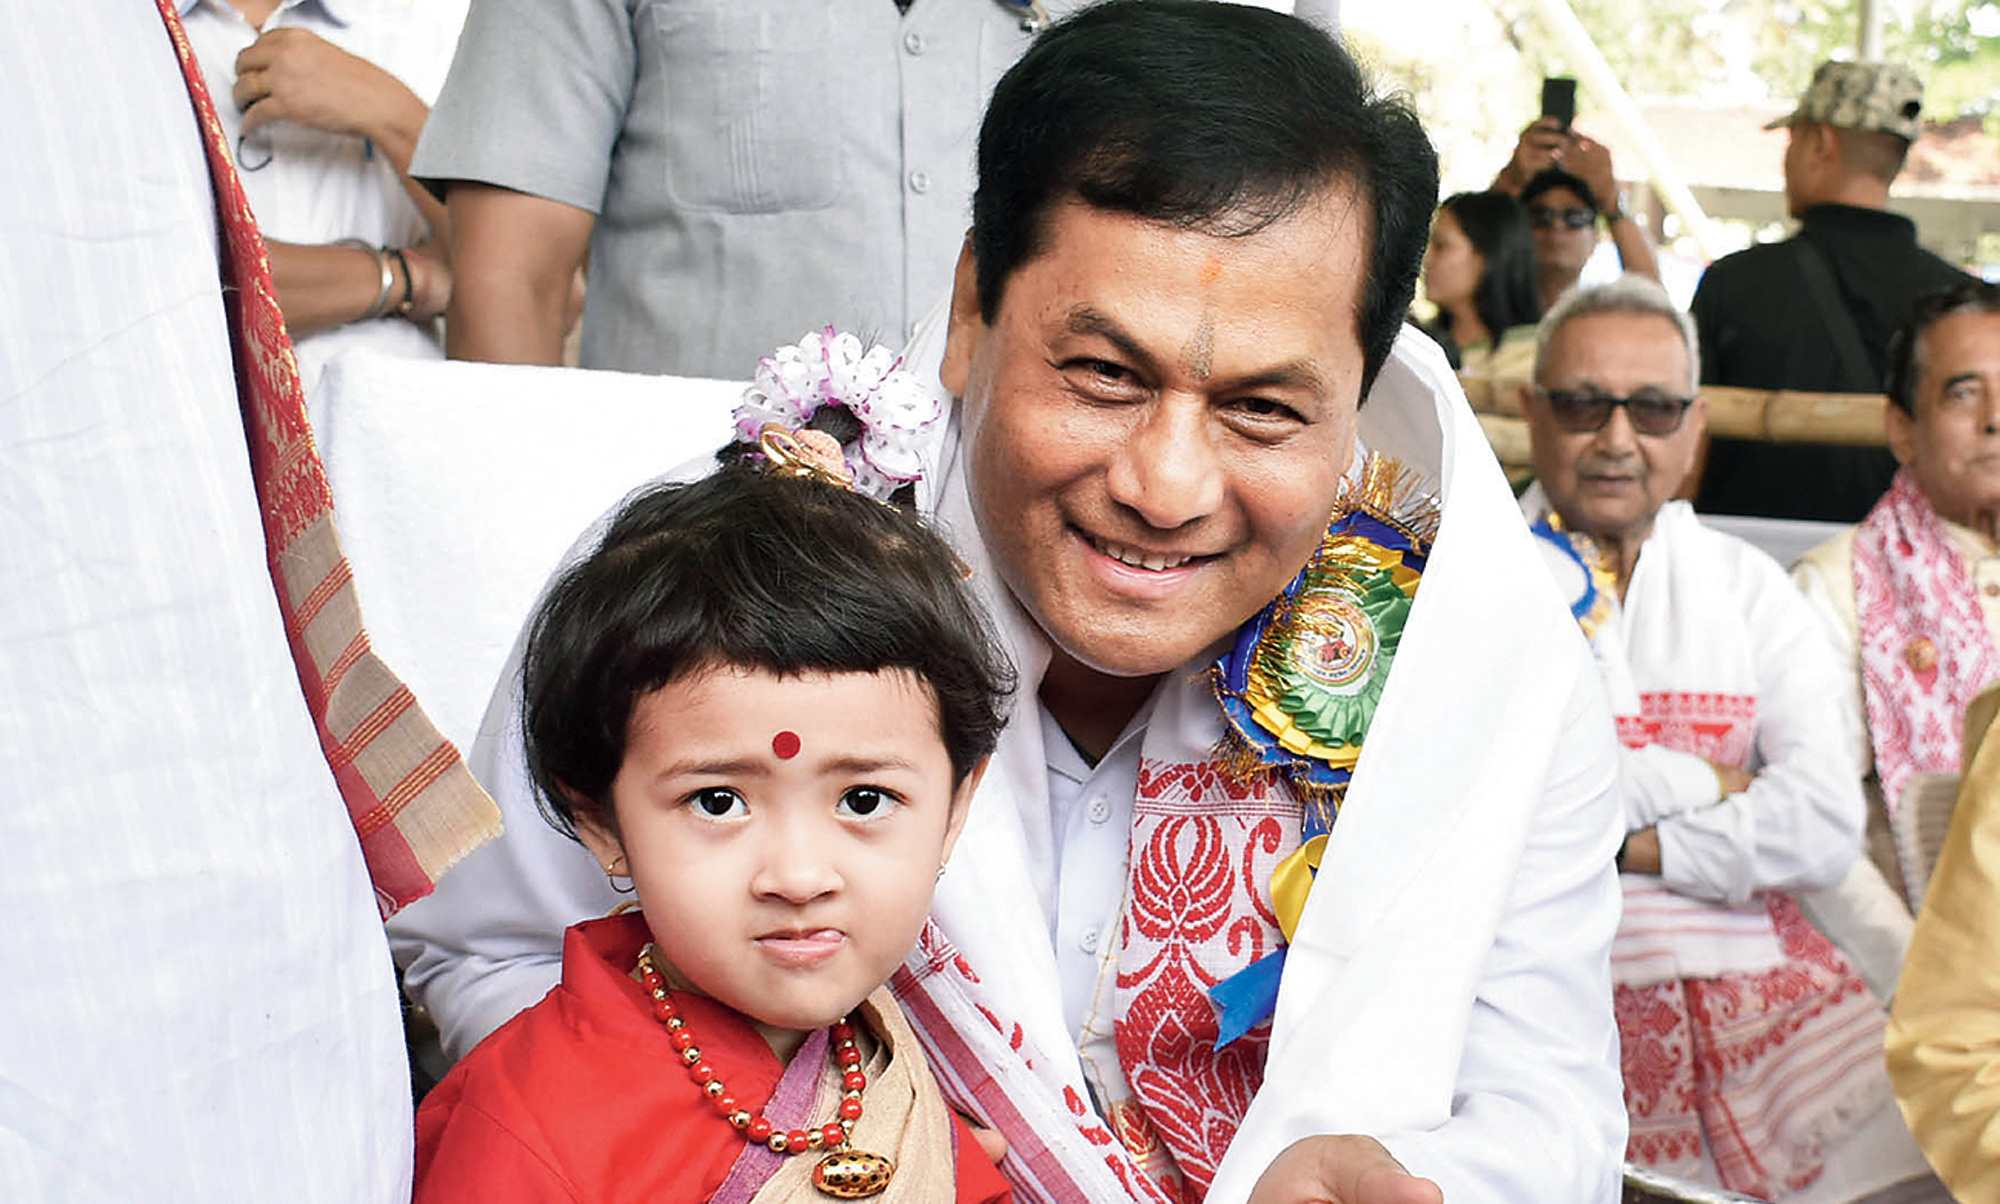 Assam chief minister Sarbananda Sonowal speaks to a girl during the Rongali Bihu celebrations at Latasil playground in Guwahati on Sunday.